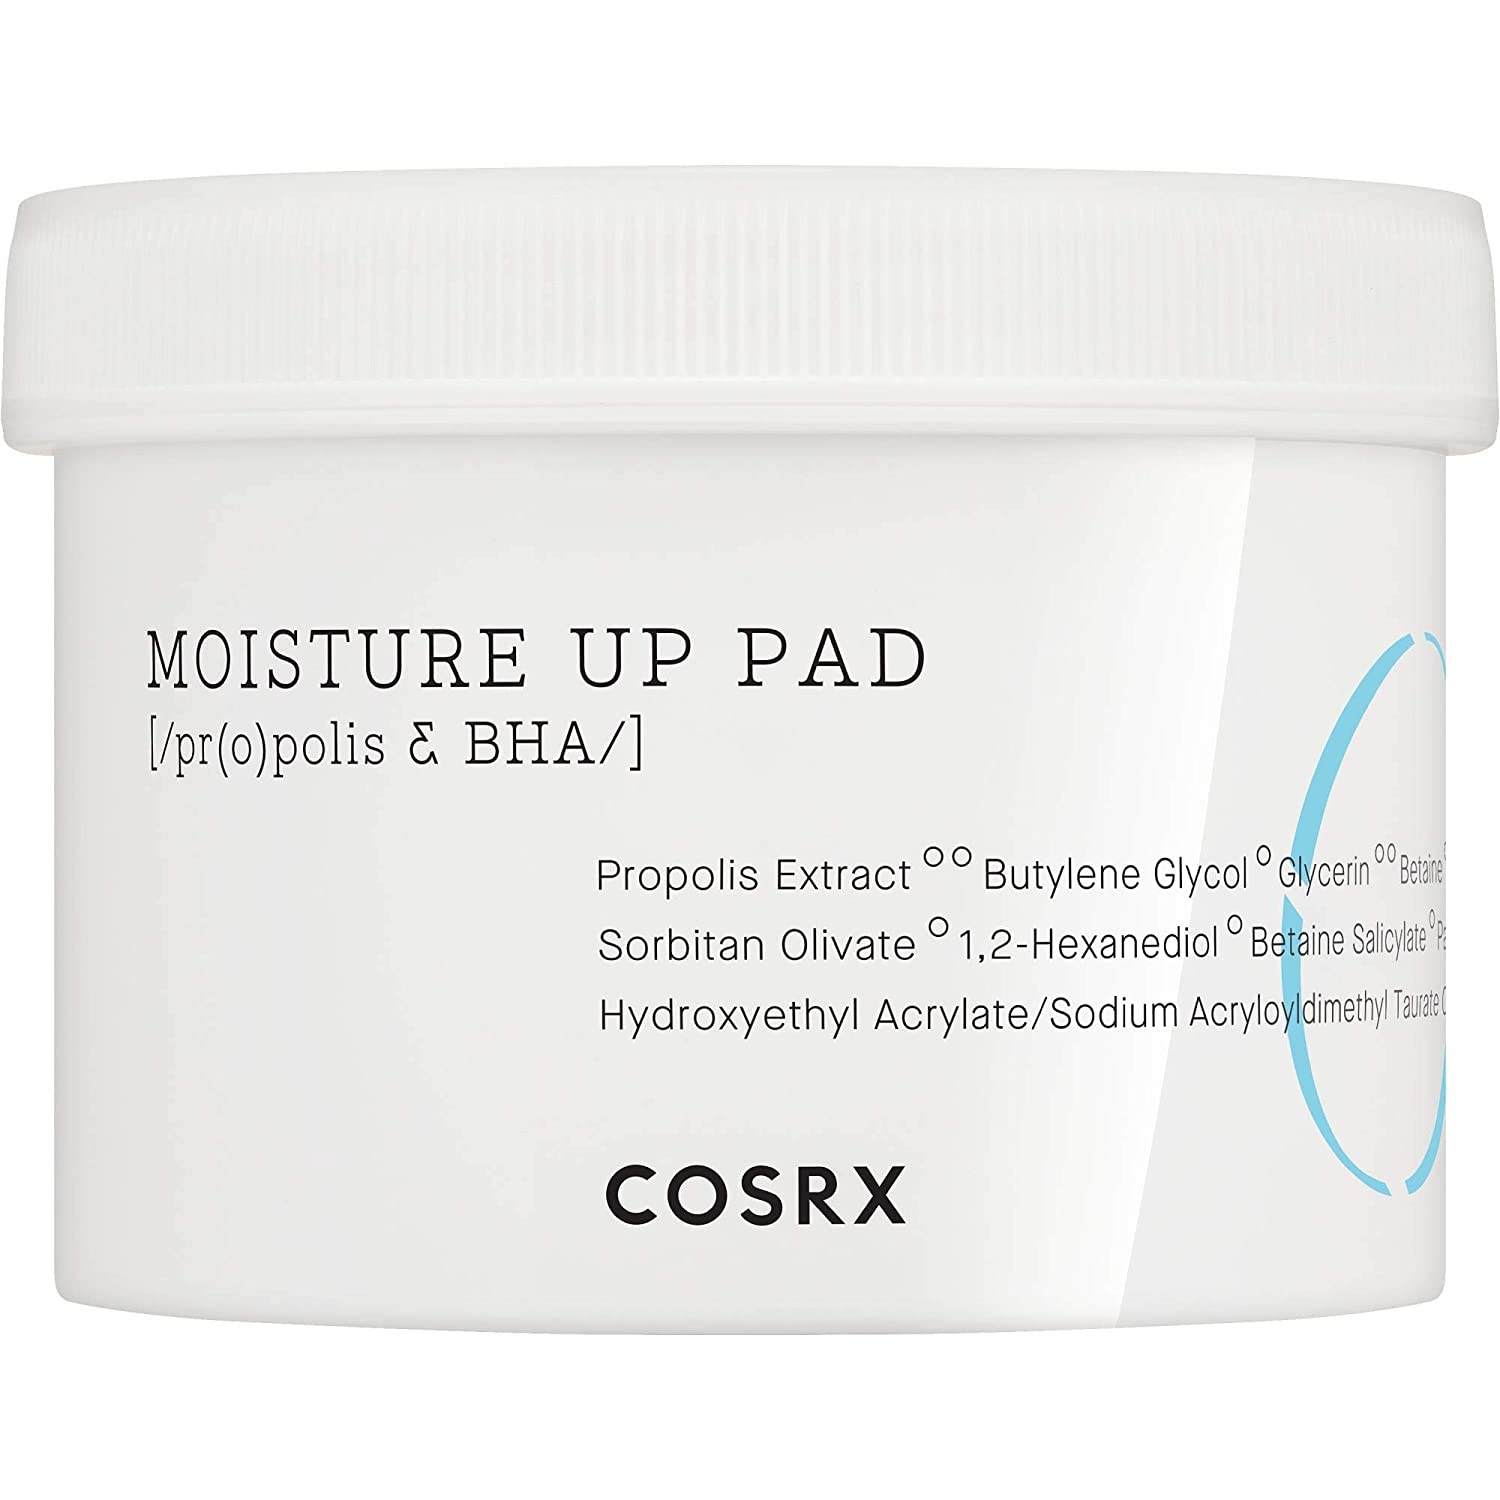 COSRX One Step Moisture Up Pad, 70 Pads | Propolis Extract Toner-Soaked | Exfoliating and Cleansing Pad (New Design)